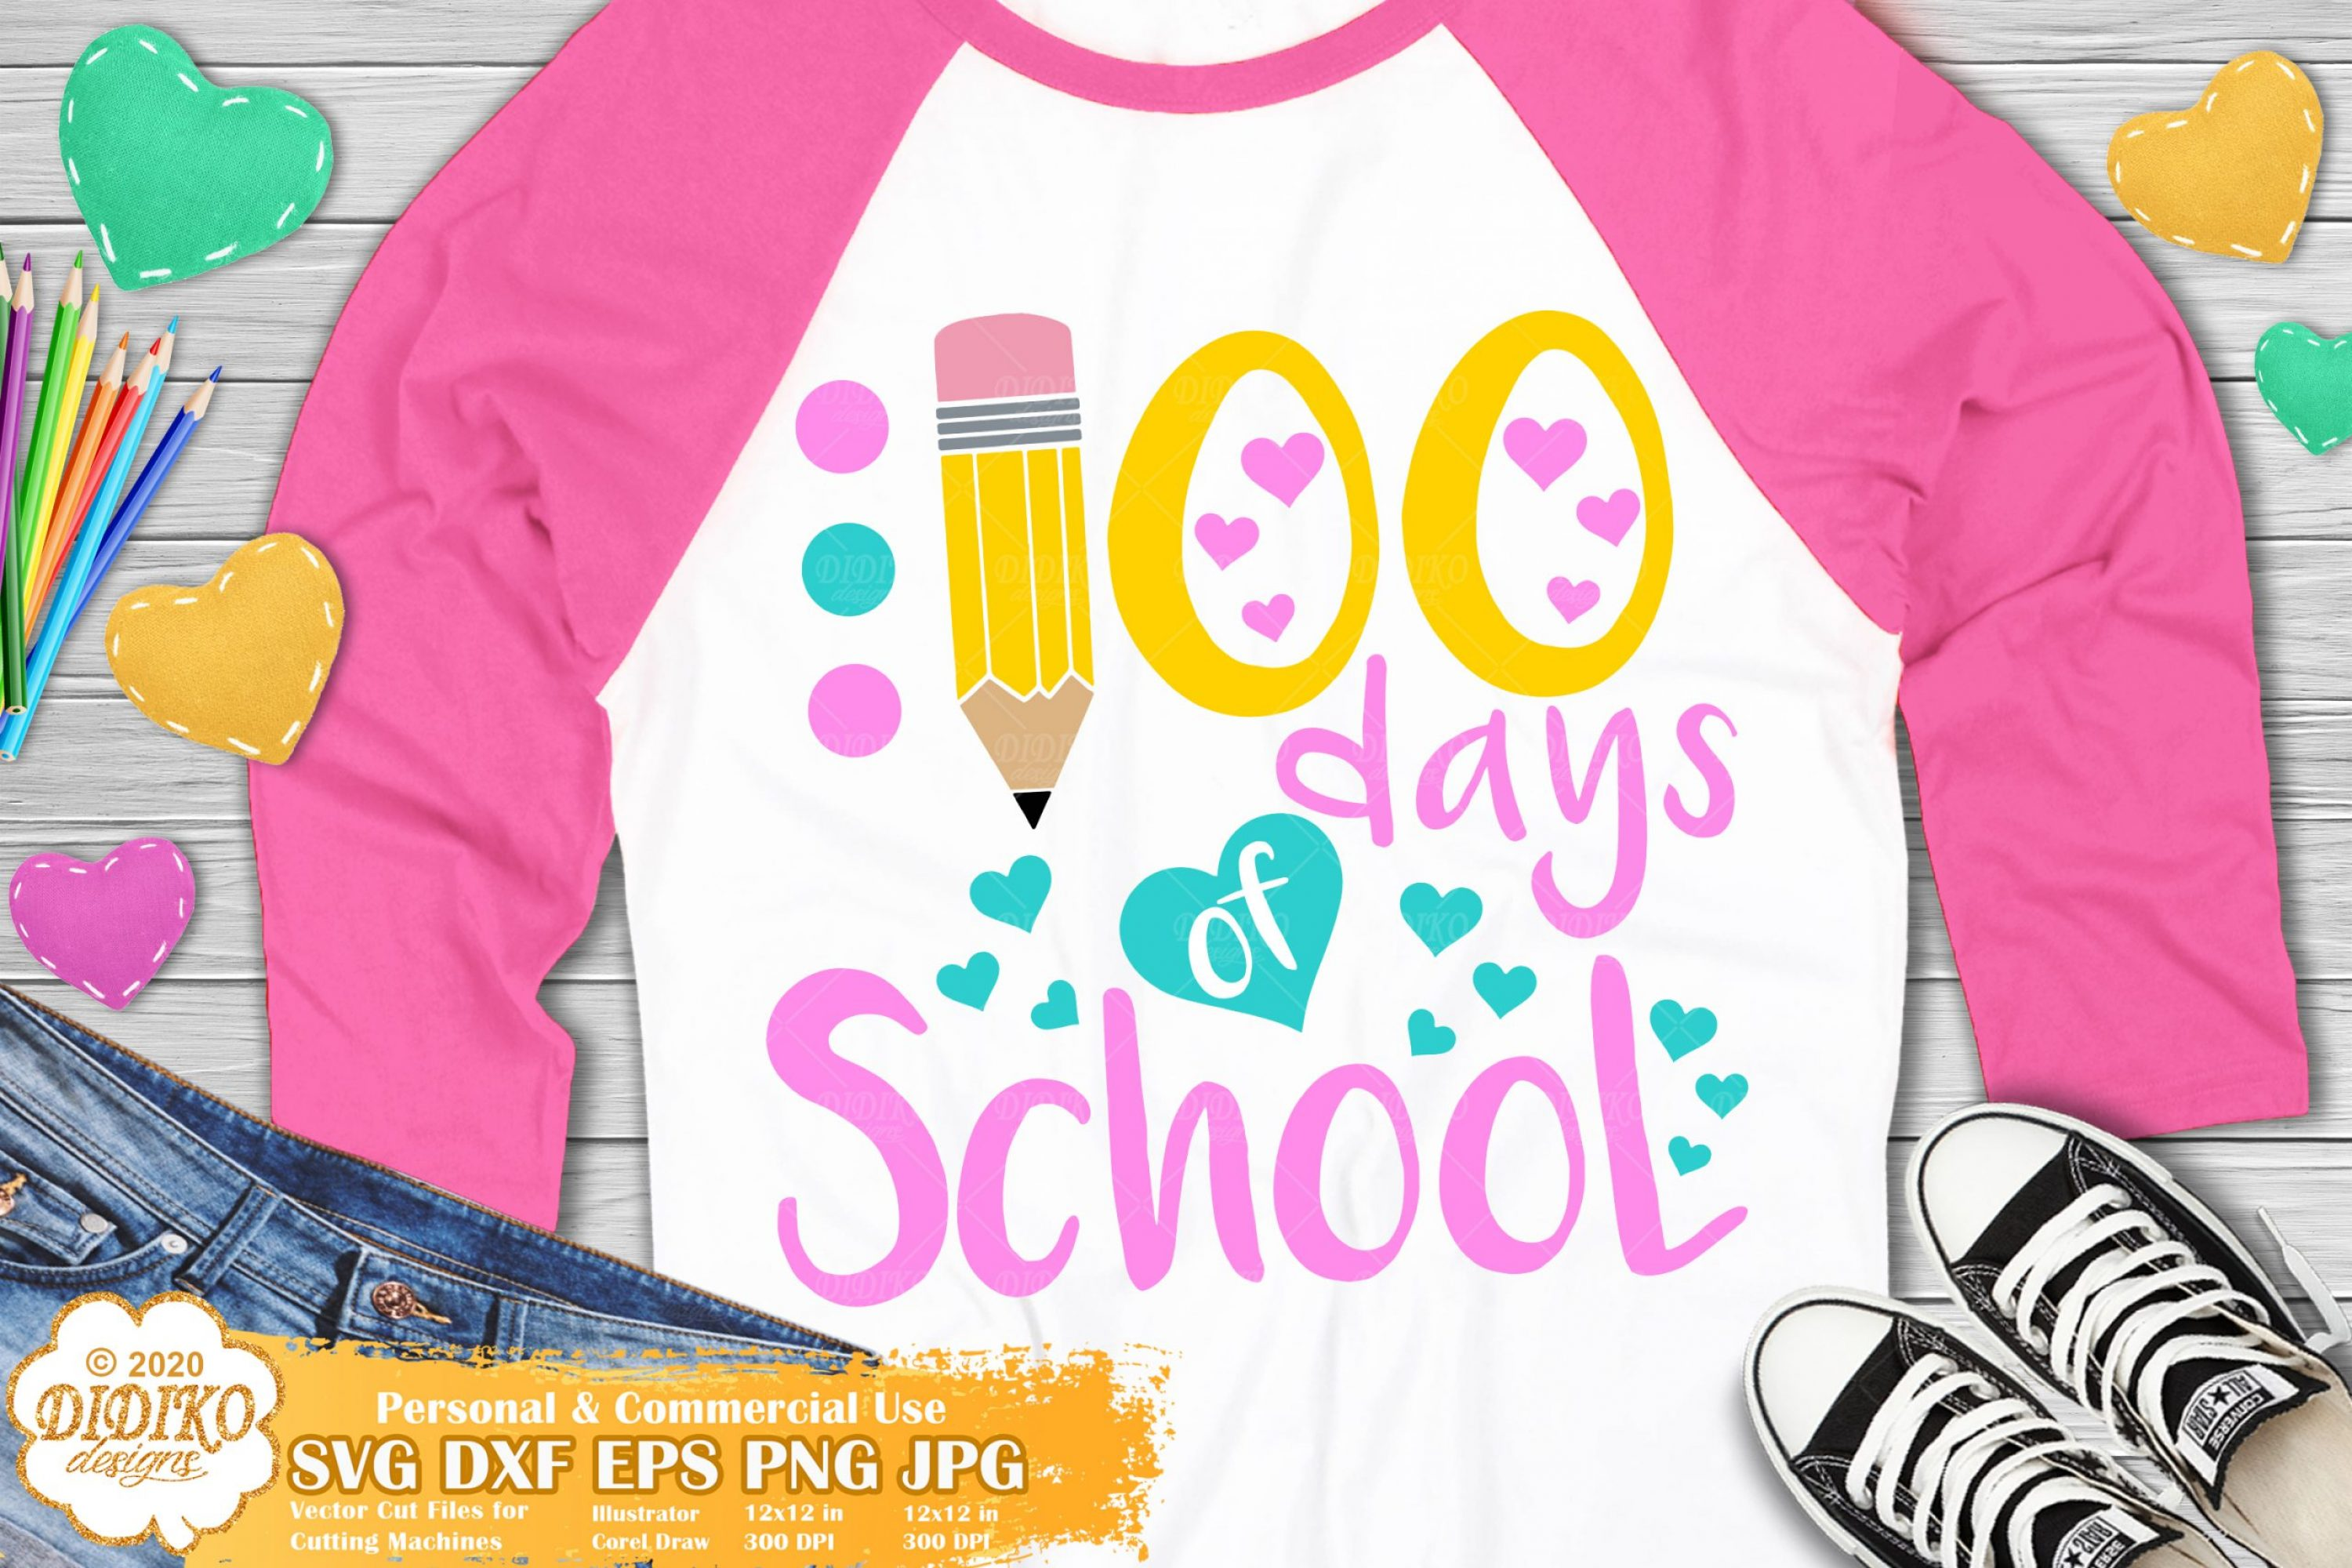 100 Days Of School SVG, Pencil SVG, Teacher svg